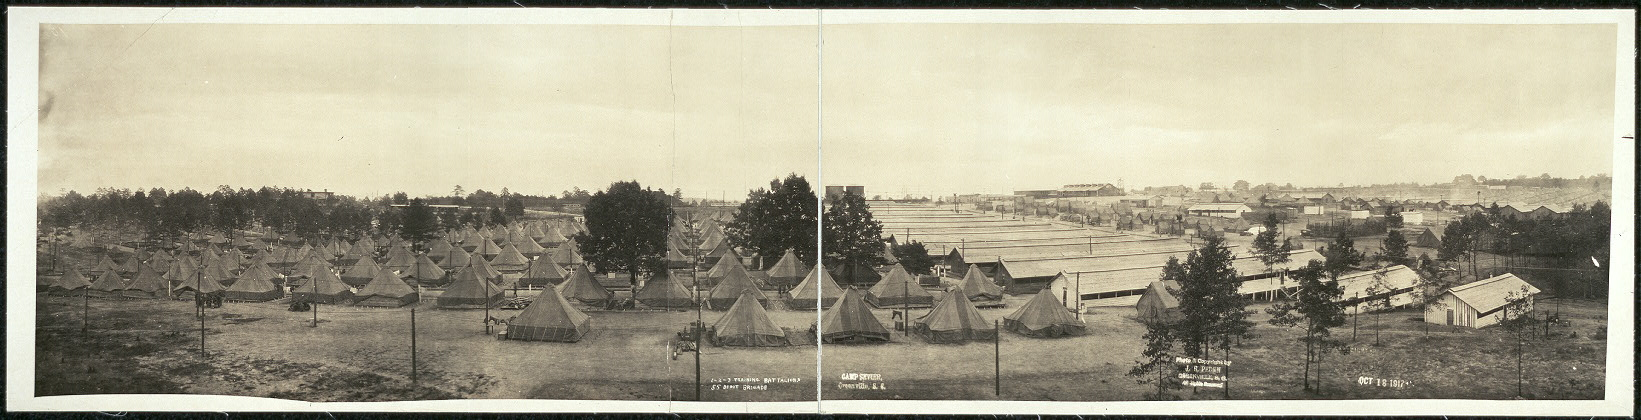 30th Division Sanitation Practices at Camp Sevier 1917   NC DNCR